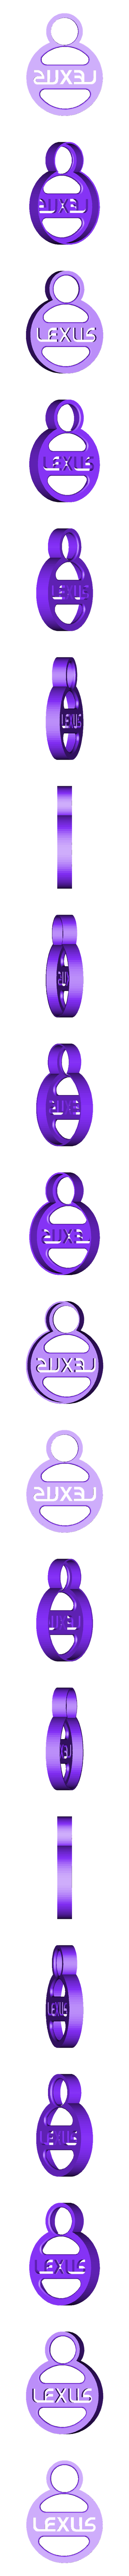 Lexus_Key_Chain_Base.stl Download free STL file LEXUS GEAR KEY CHAIN • 3D printing template, GREGCAR_3DPrinting